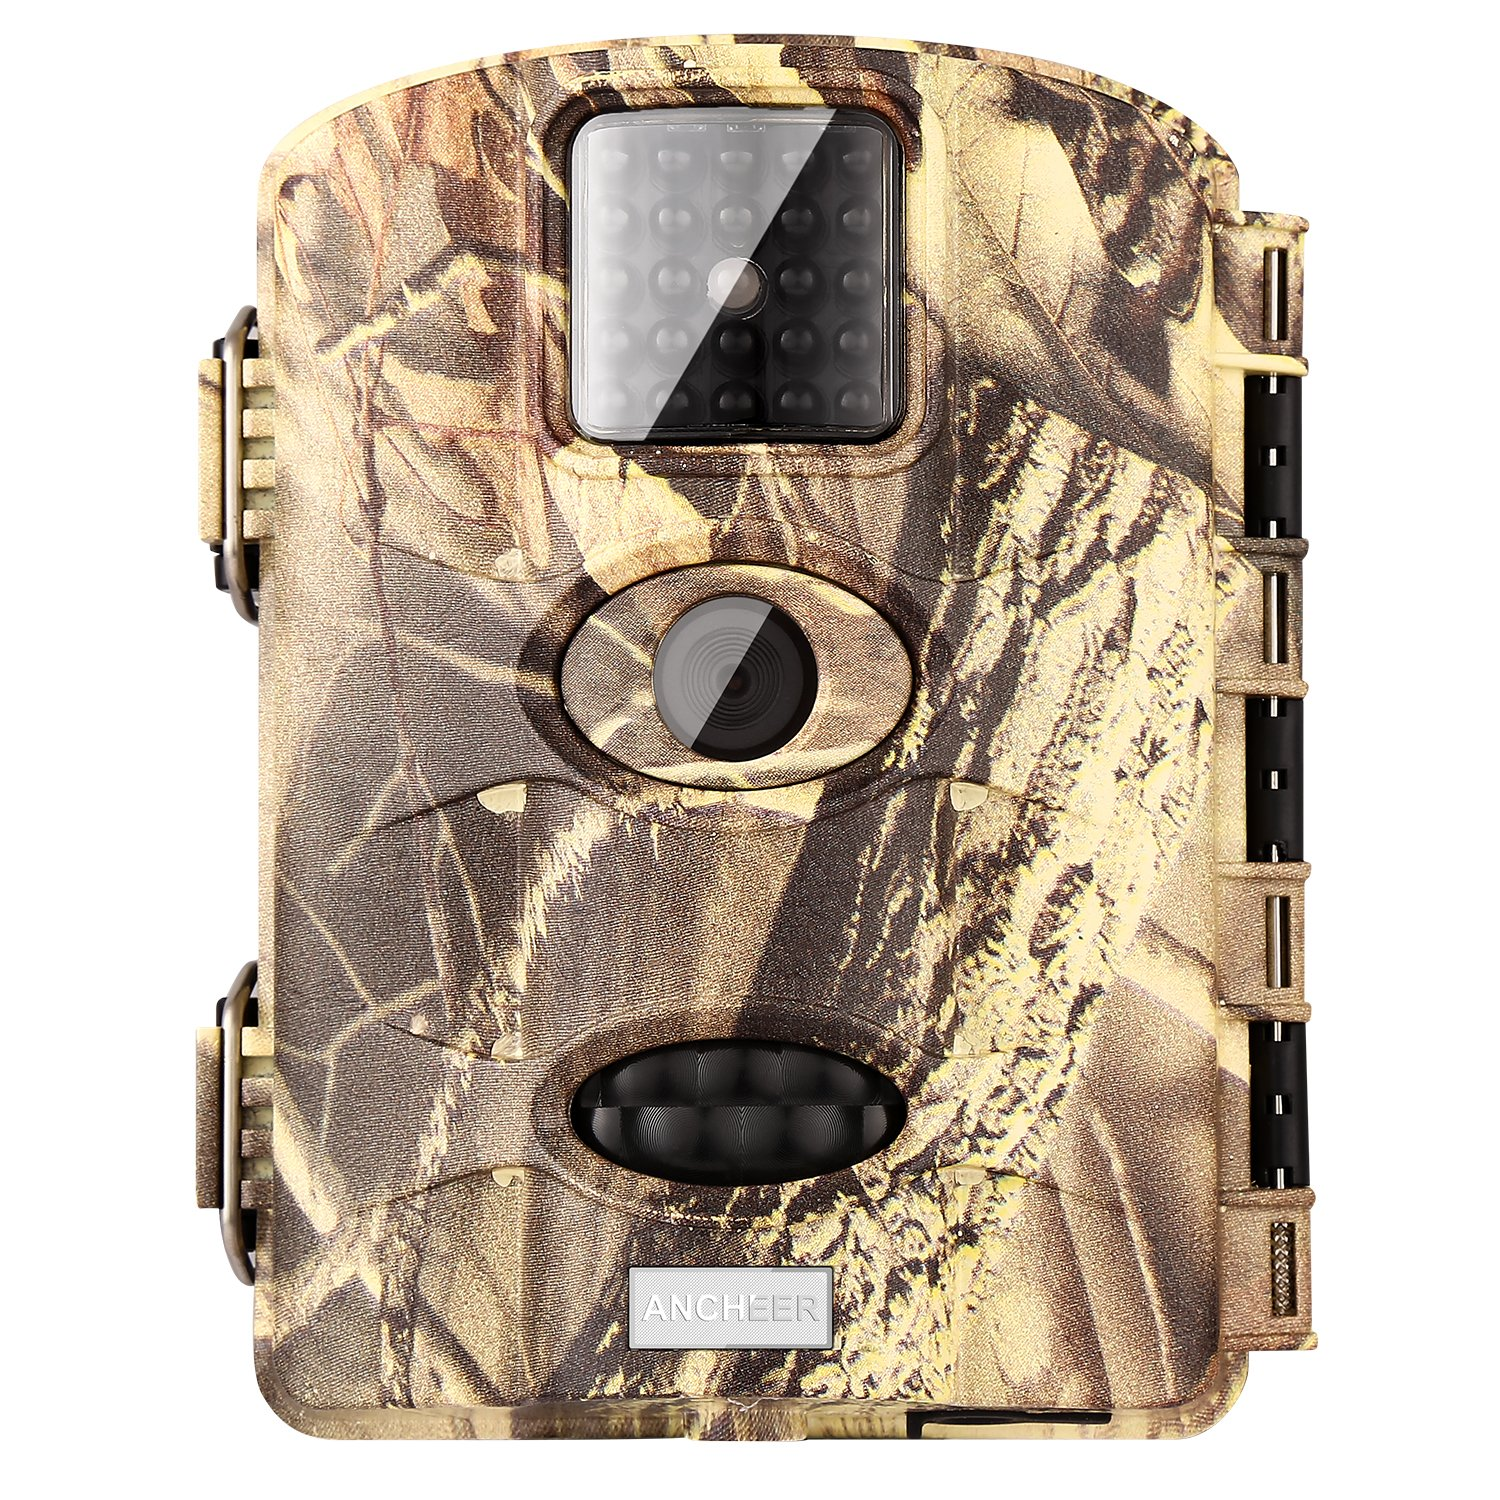 [Newest] Trail Game Camera Ancheer 16MP 1080P Wildlife Deer Camera 110° PIR Sensor Angle, 0.6s Trigeer Time, 65ft Infrared Camera Motion Activated with Night Vision, 2.4'' LCD Display, IP65 Waterproof